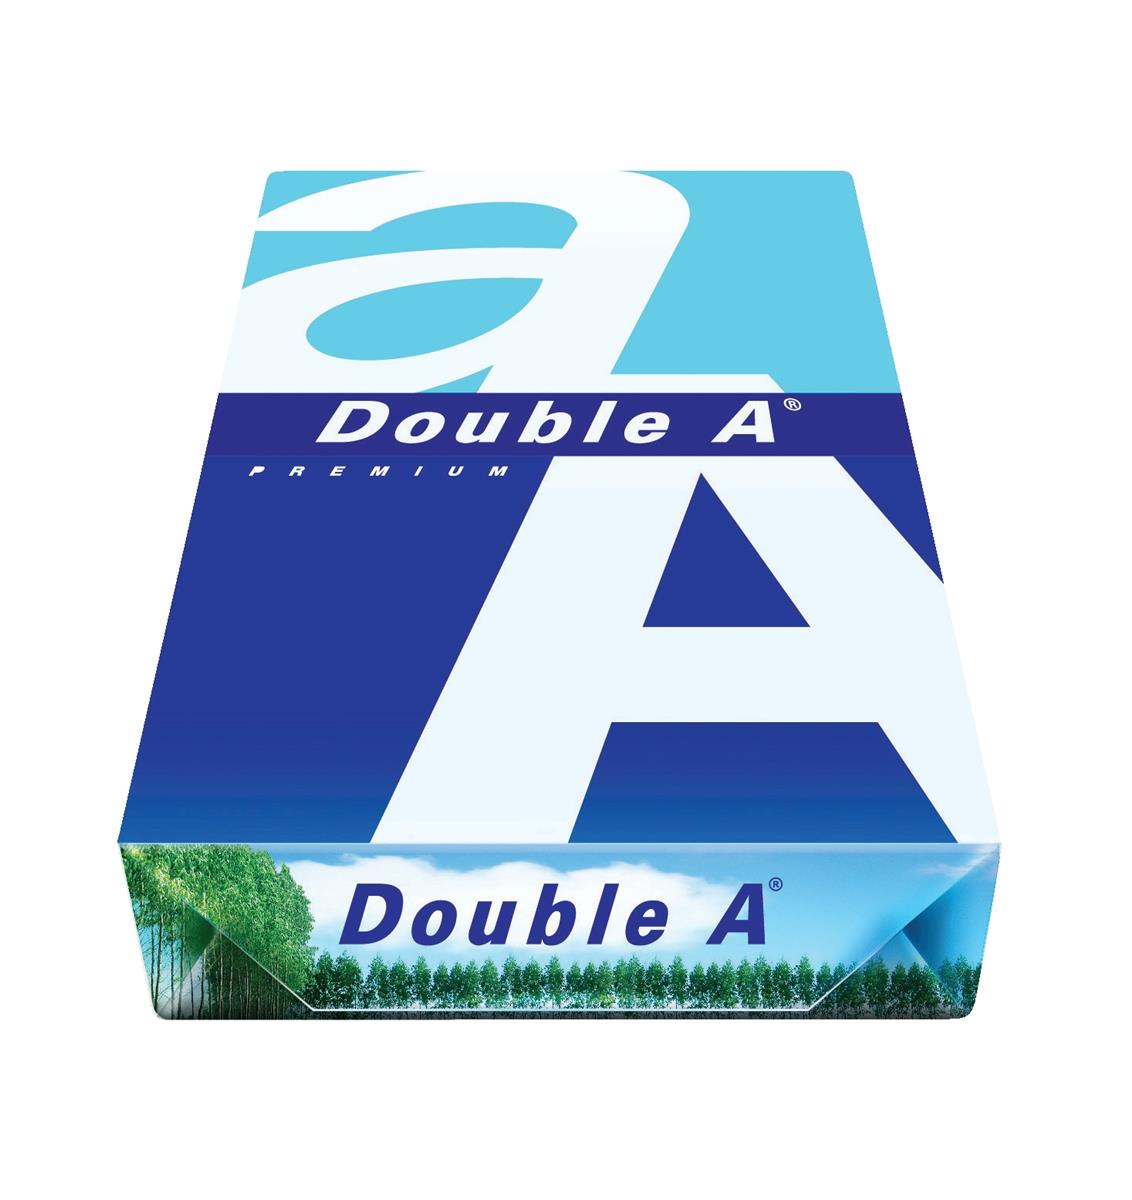 Double A Premium Copier Paper Multifunctional Ream-Wrapped 90gsm A4 White Ref DA90A4D [500 Sheets]